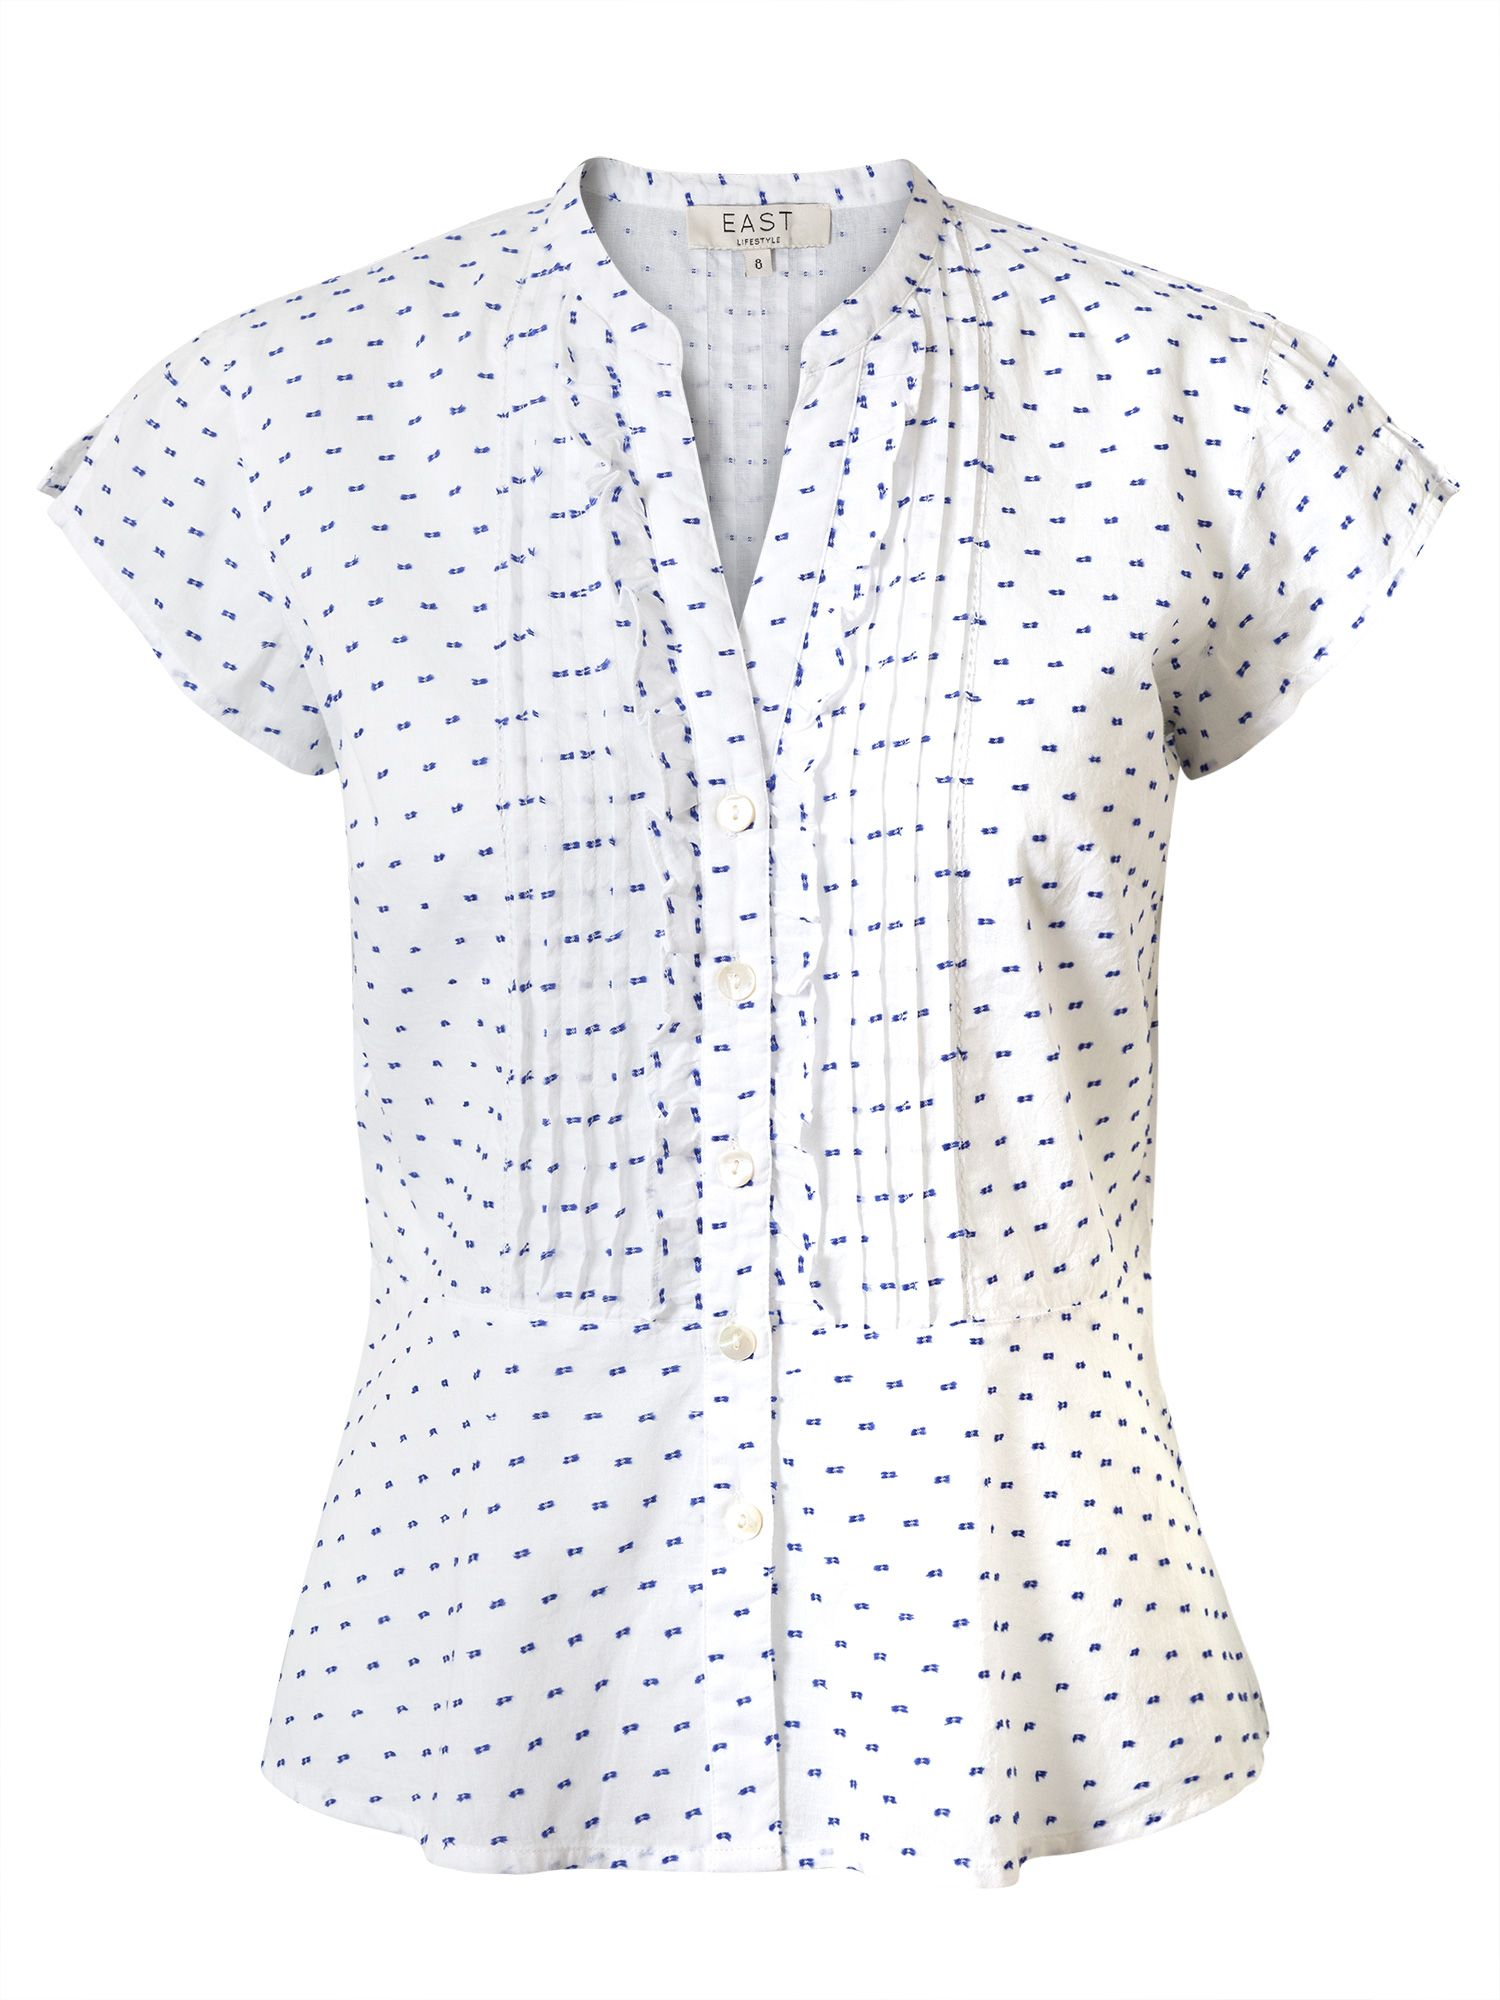 East POLKA DOT DOBBY SHIRT, White